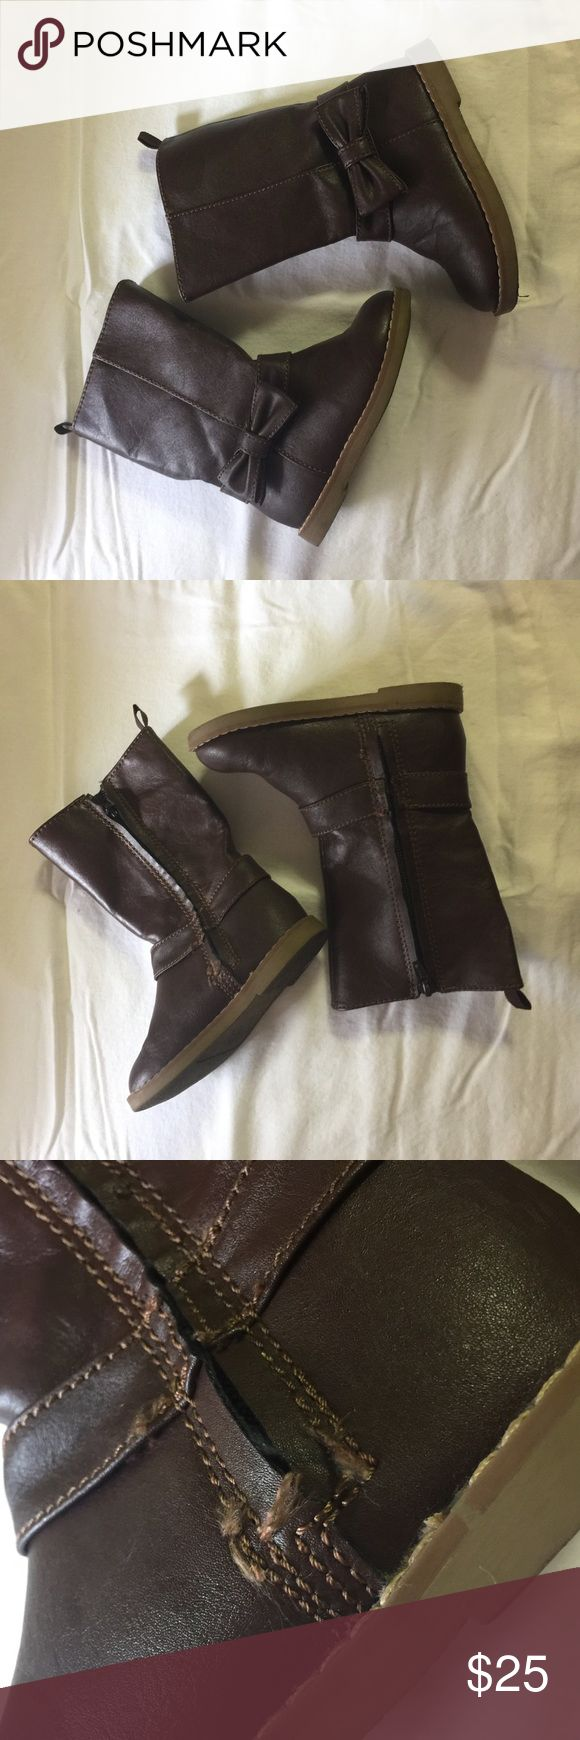 Baby Gap Brown Bow Riding Boots Pre-owned, gently used, Baby Gap Brown Bow Riding boots. Sz 8. In great condition. One of the Boots has loose stitching as pictured, but it is not broken. GAP Shoes Boots